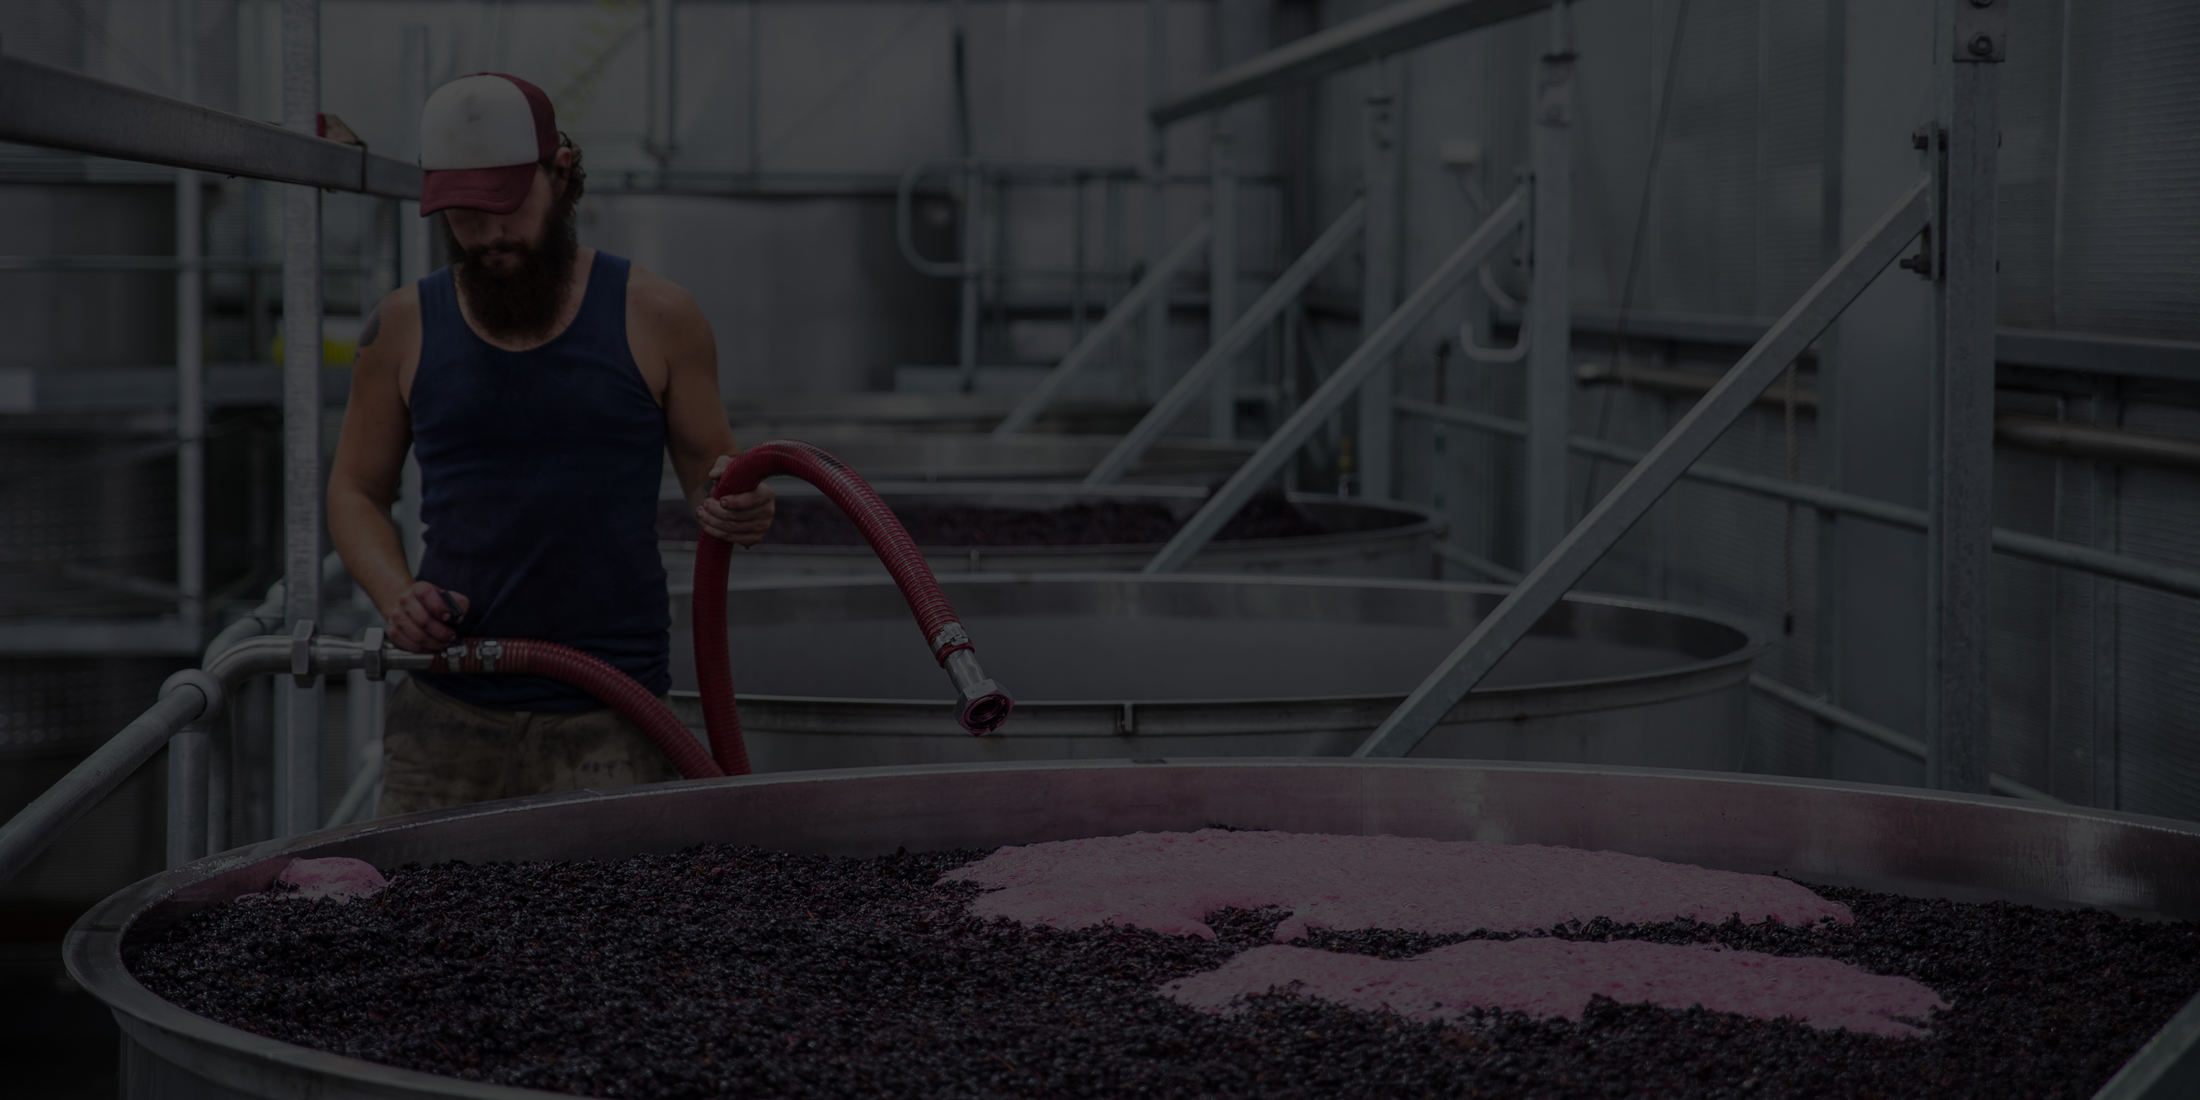 The Art of Winemaking is as Old as Time Itself